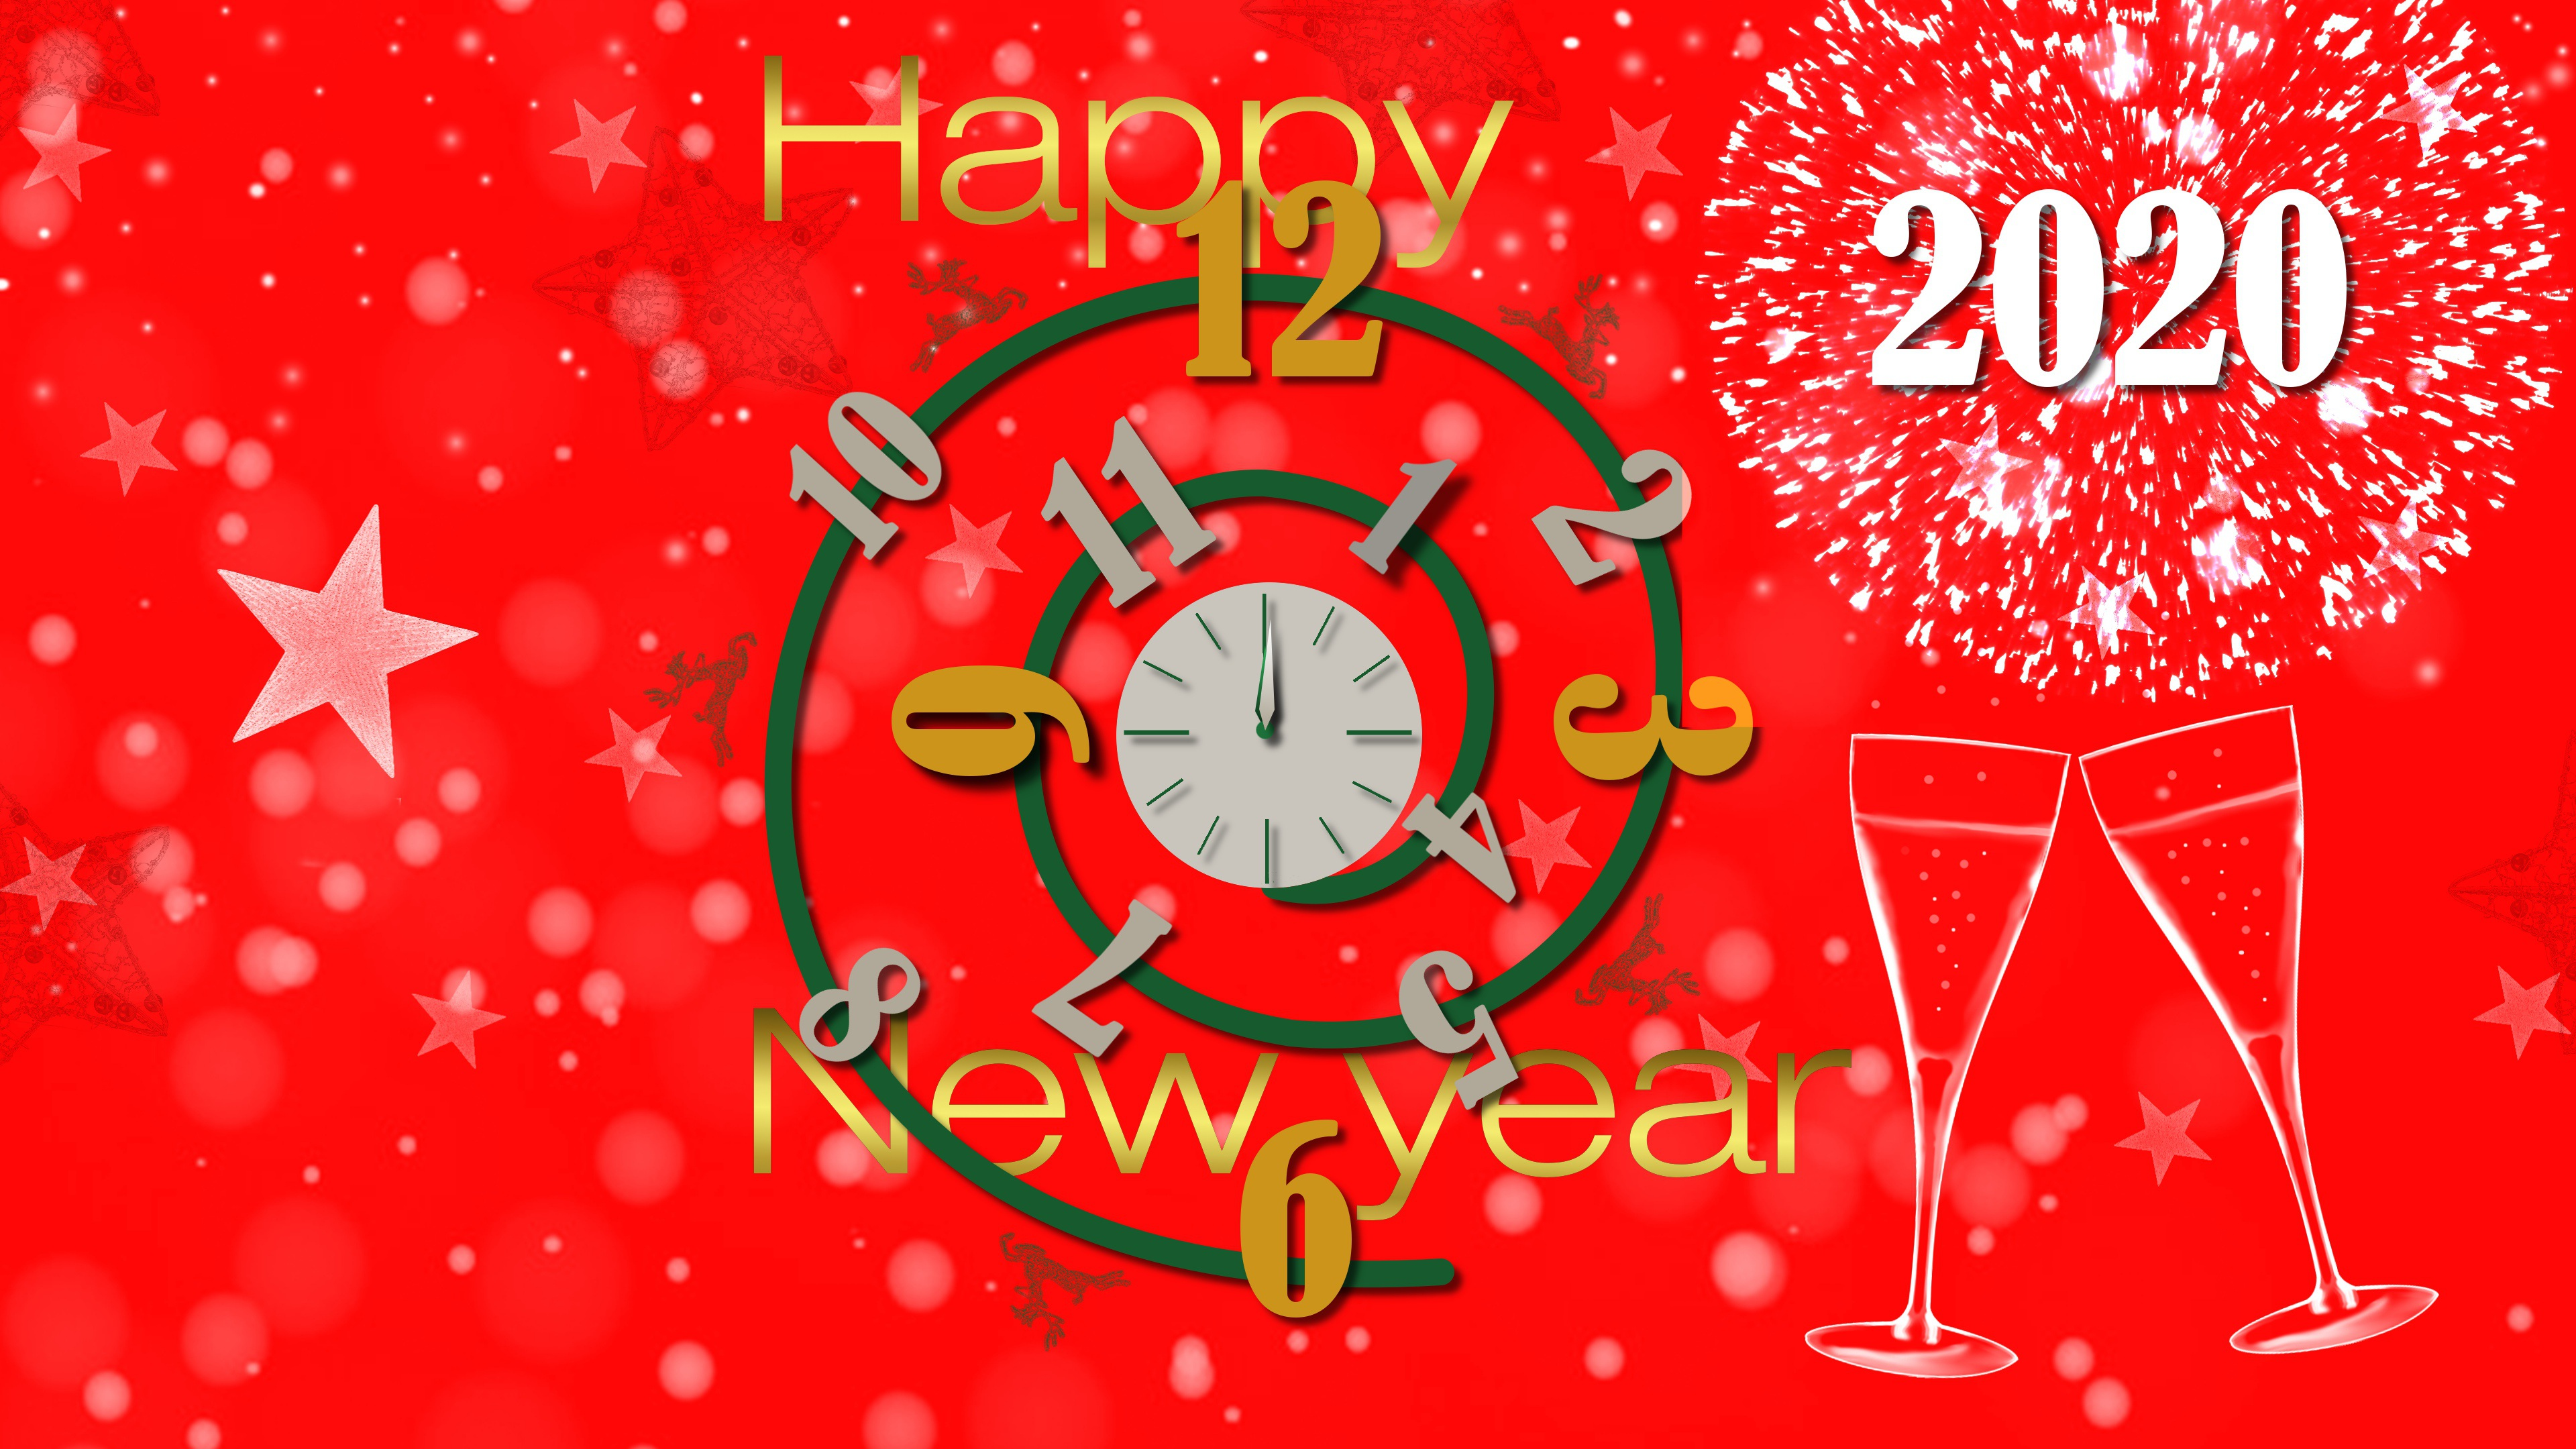 New Year 2020 Clock Counting Celebration HD Wallpaper